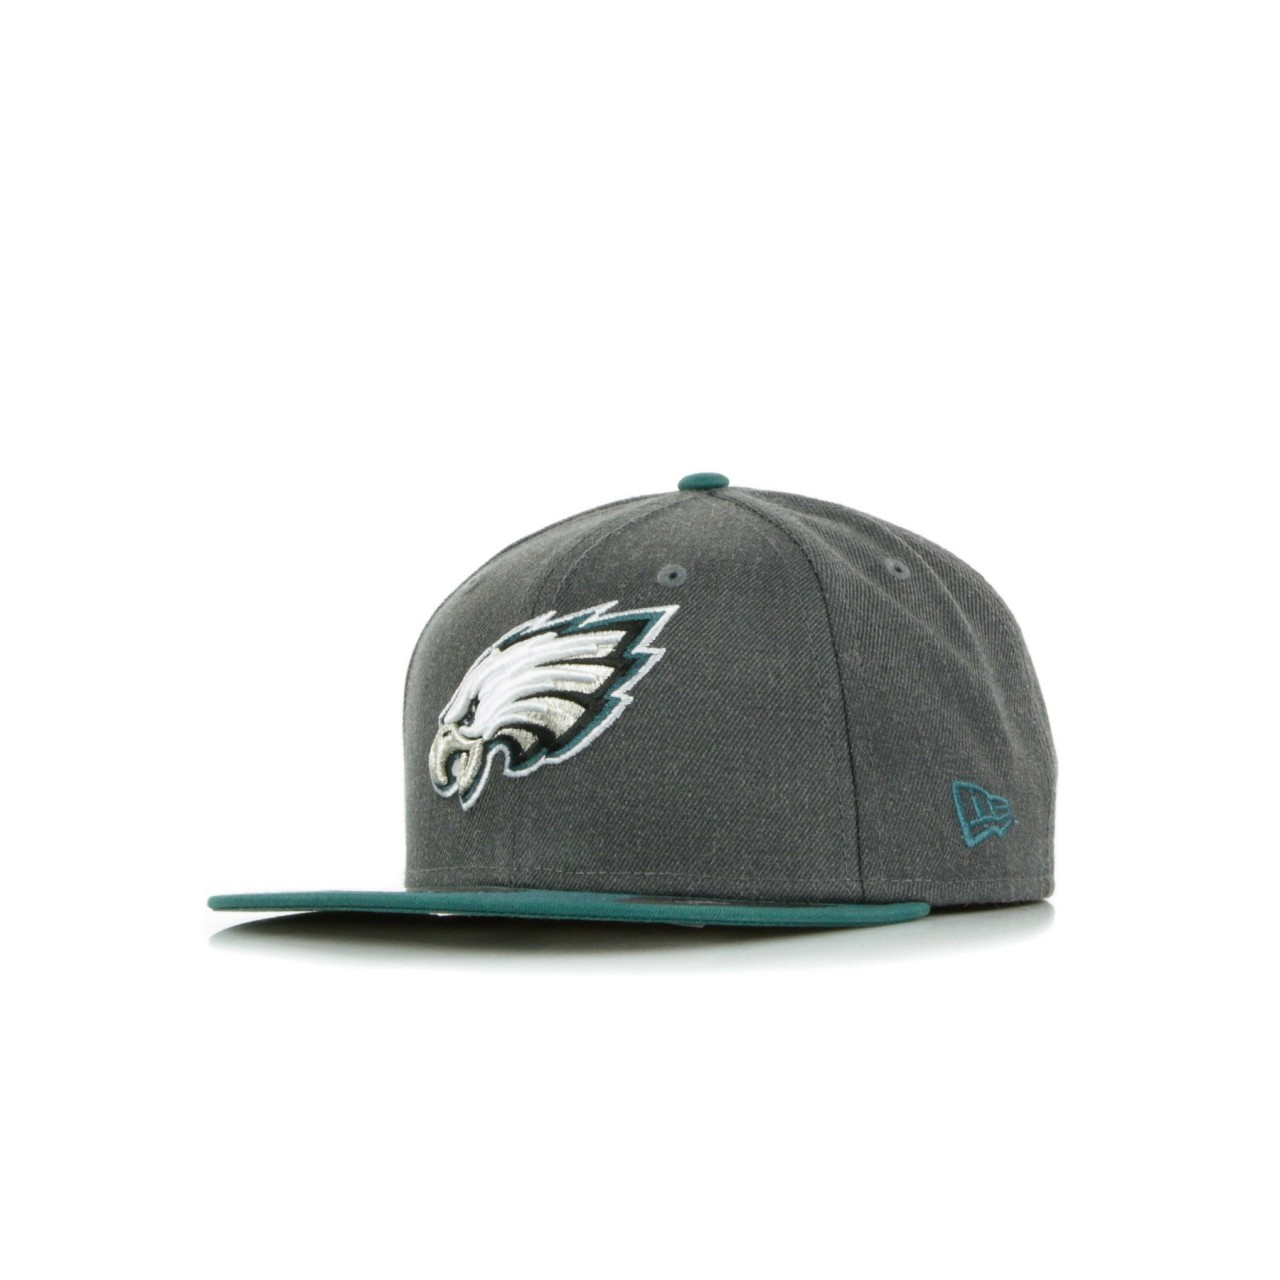 NEW ERA NFL HEATHER 9FIFTY PHIEAG 11871351